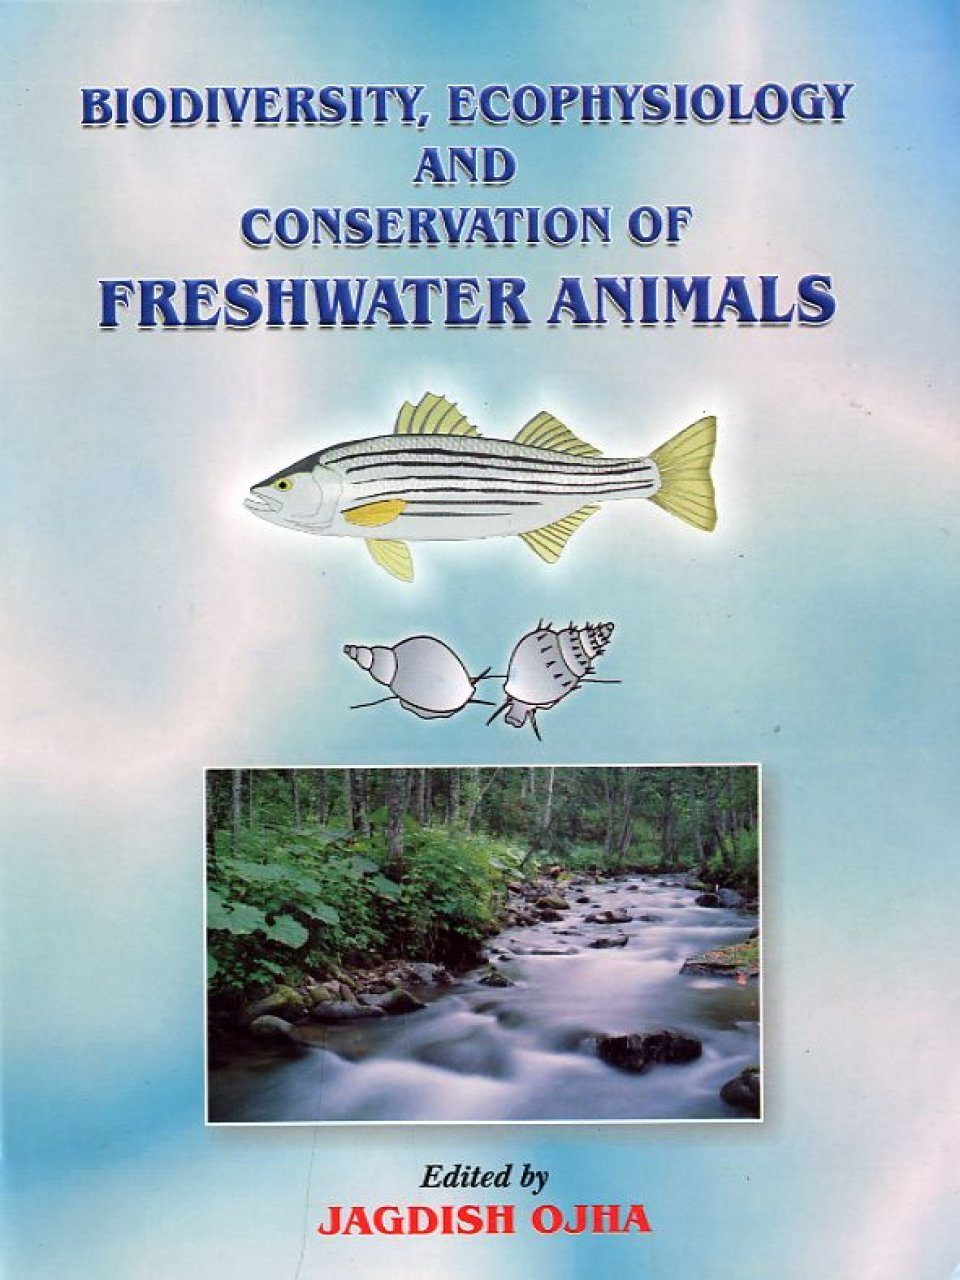 Biodiversity, Ecophysiology and Conservation of Freshwater Animals